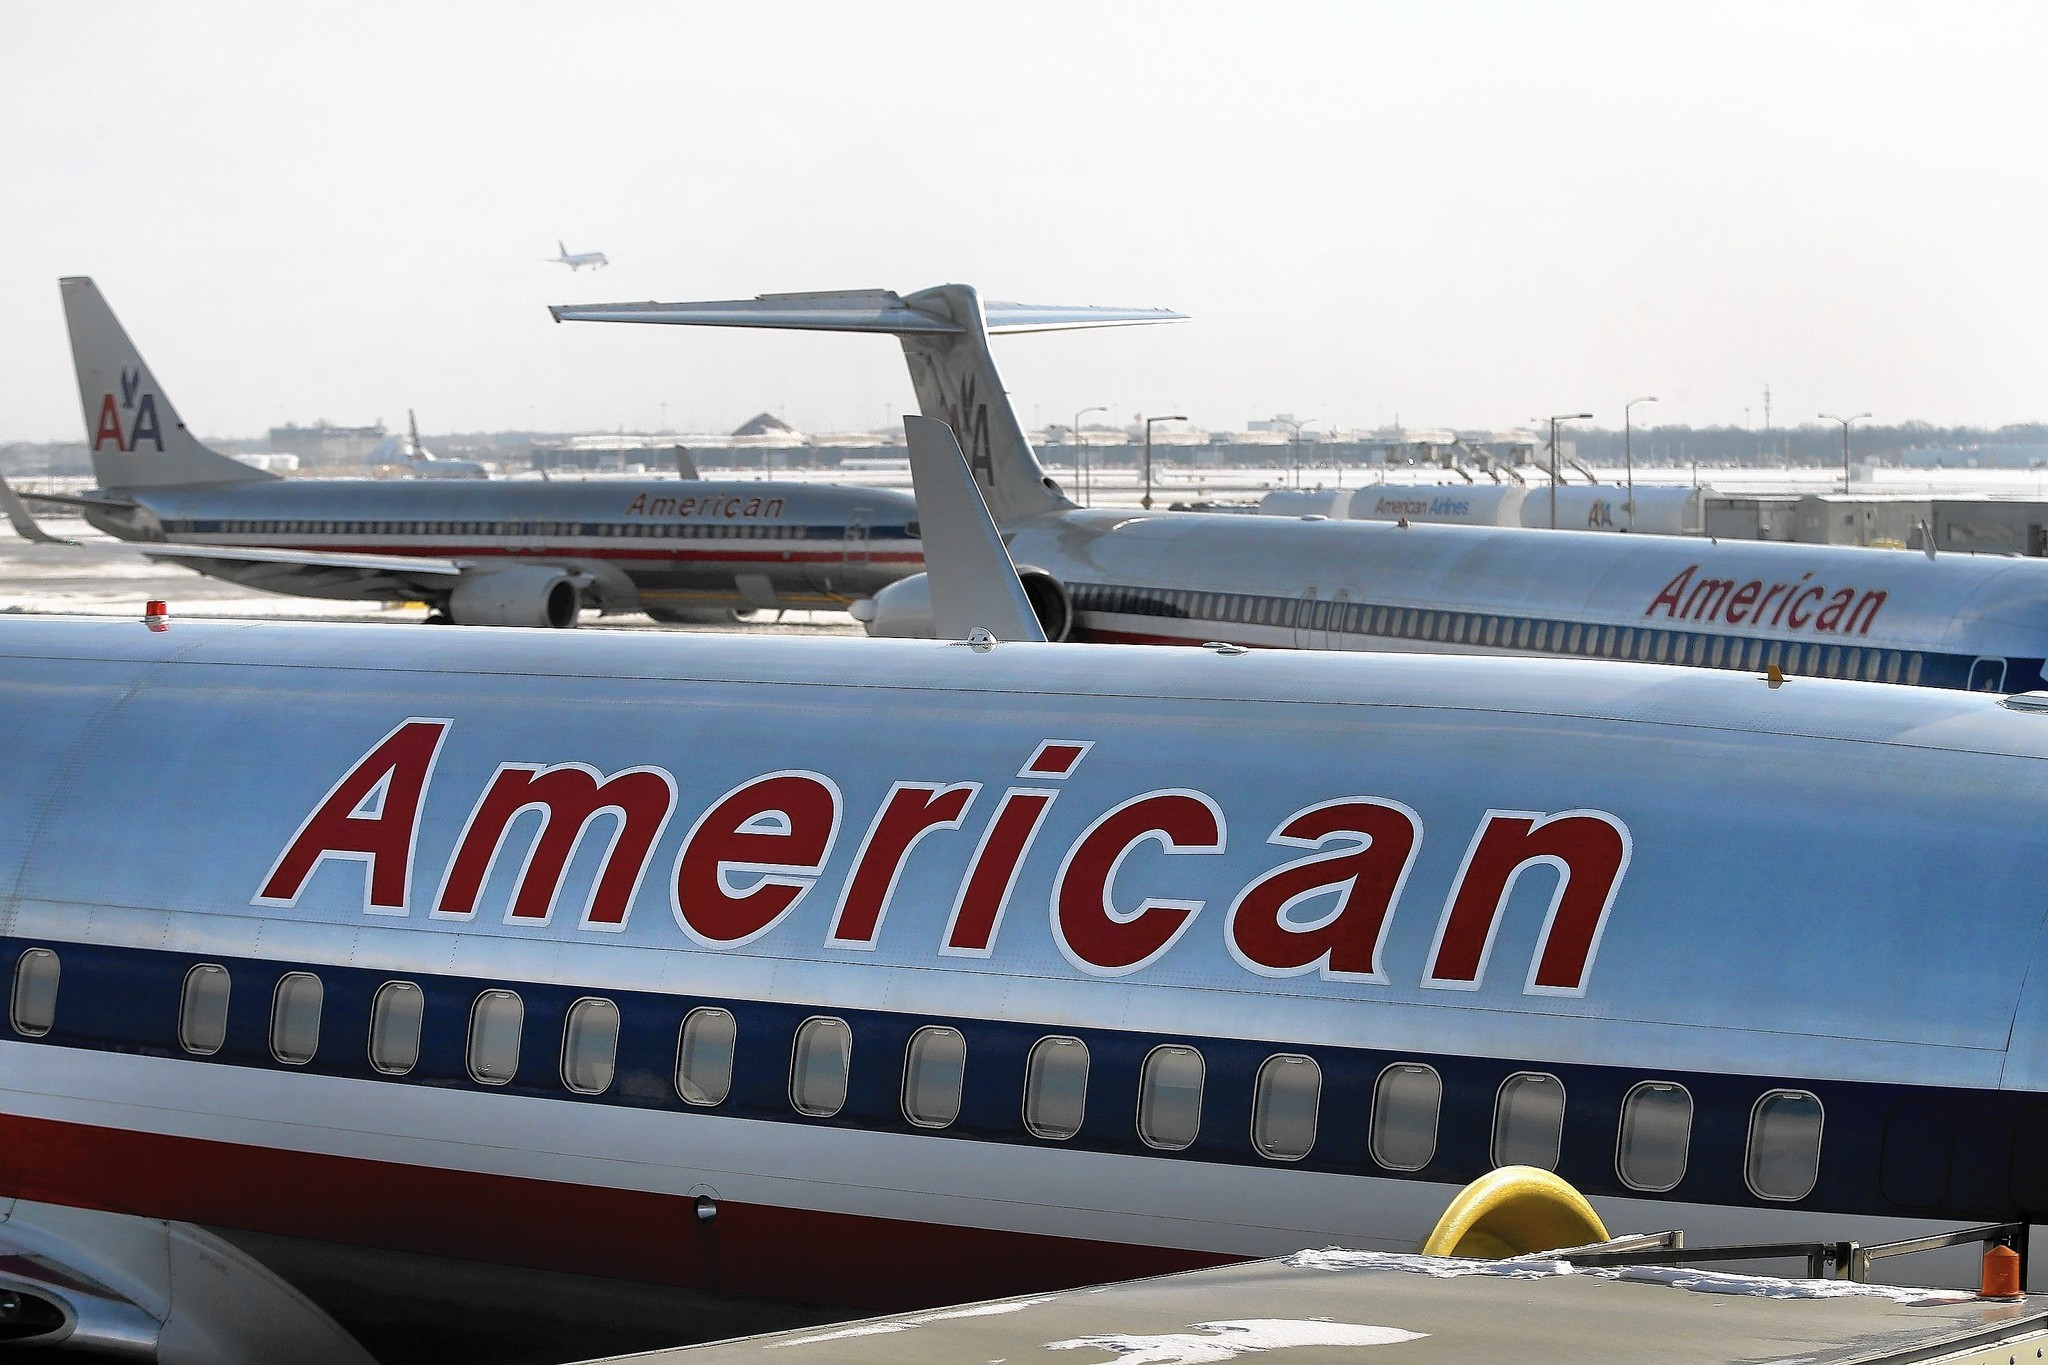 American Airlines prides itself on its rich history, tracing its roots back to the early days of aviation. In fact, it is one of the oldest operating airlines by foundation date.